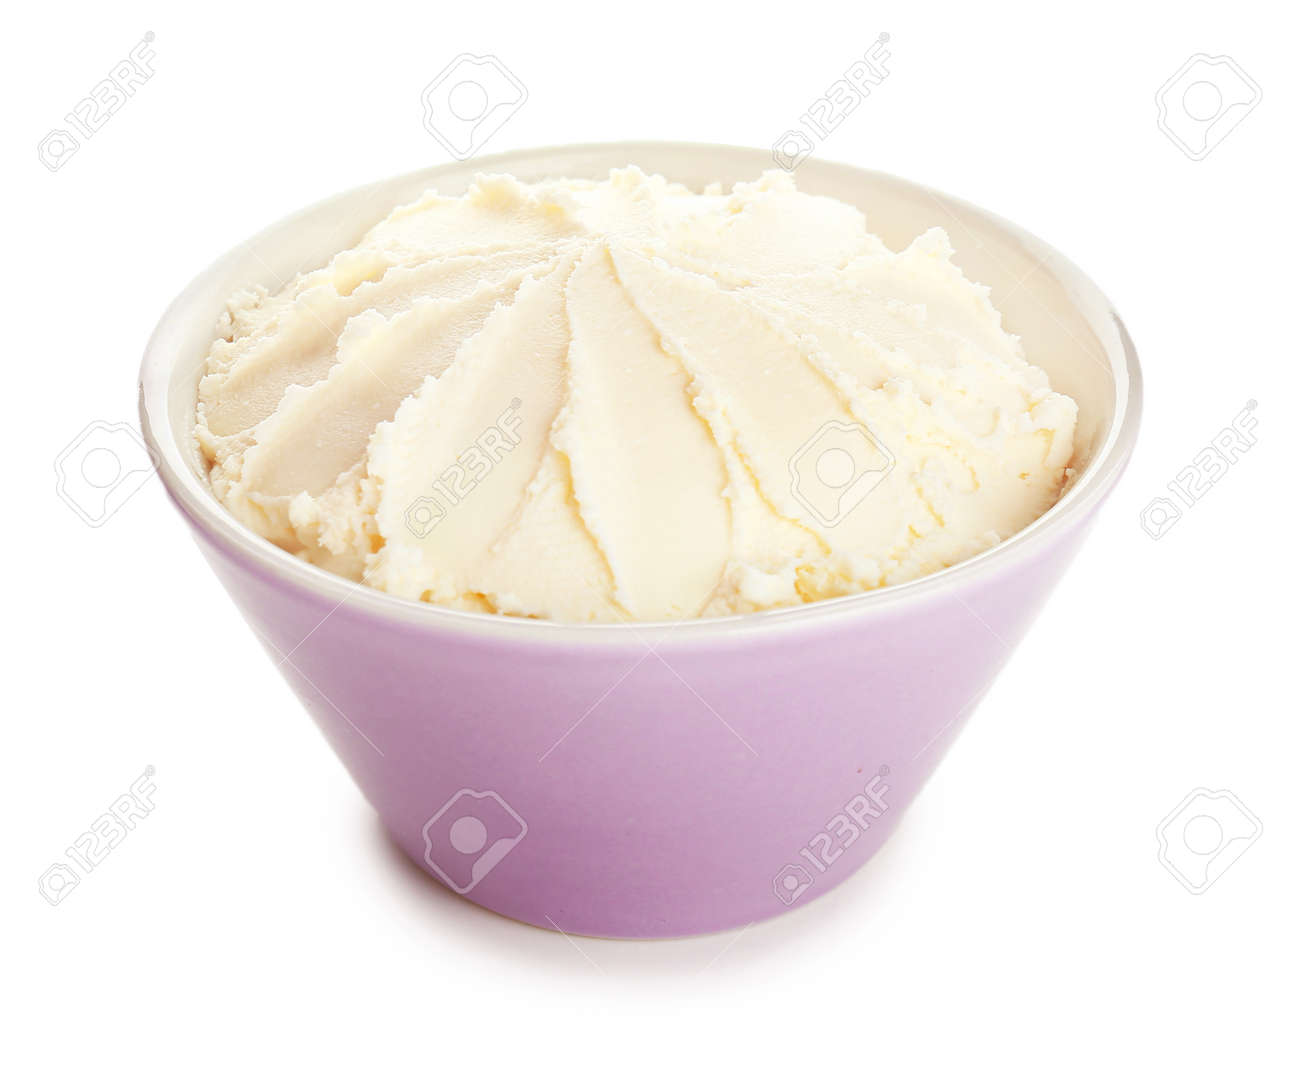 Bowl with tasty cream cheese on white background - 165911847